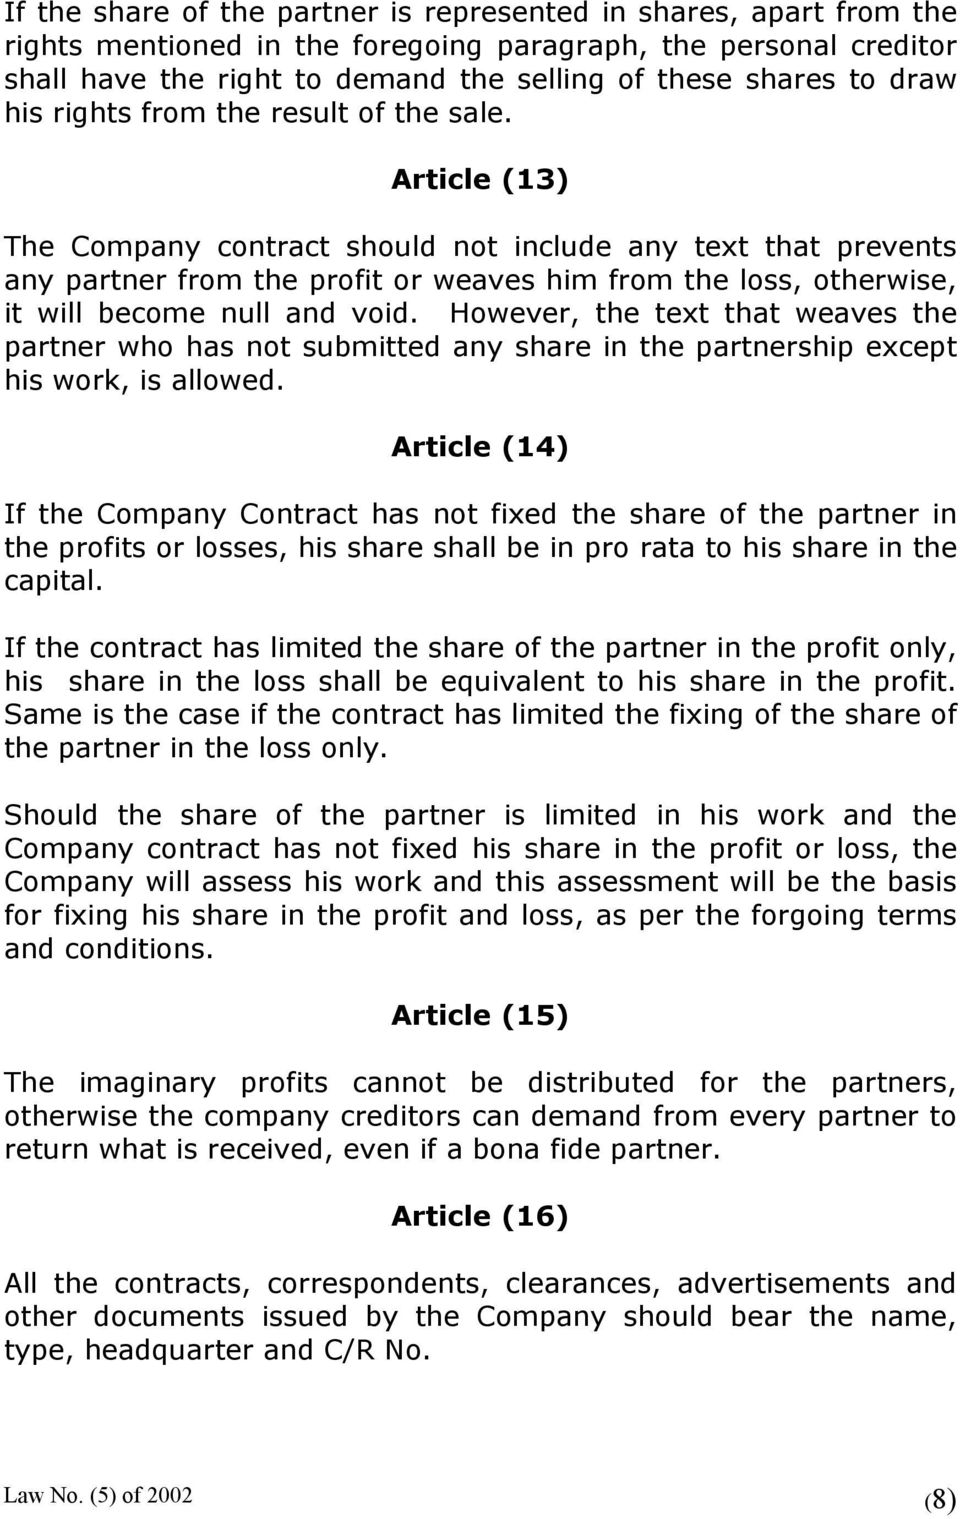 Article (13) The Company contract should not include any text that prevents any partner from the profit or weaves him from the loss, otherwise, it will become null and void.